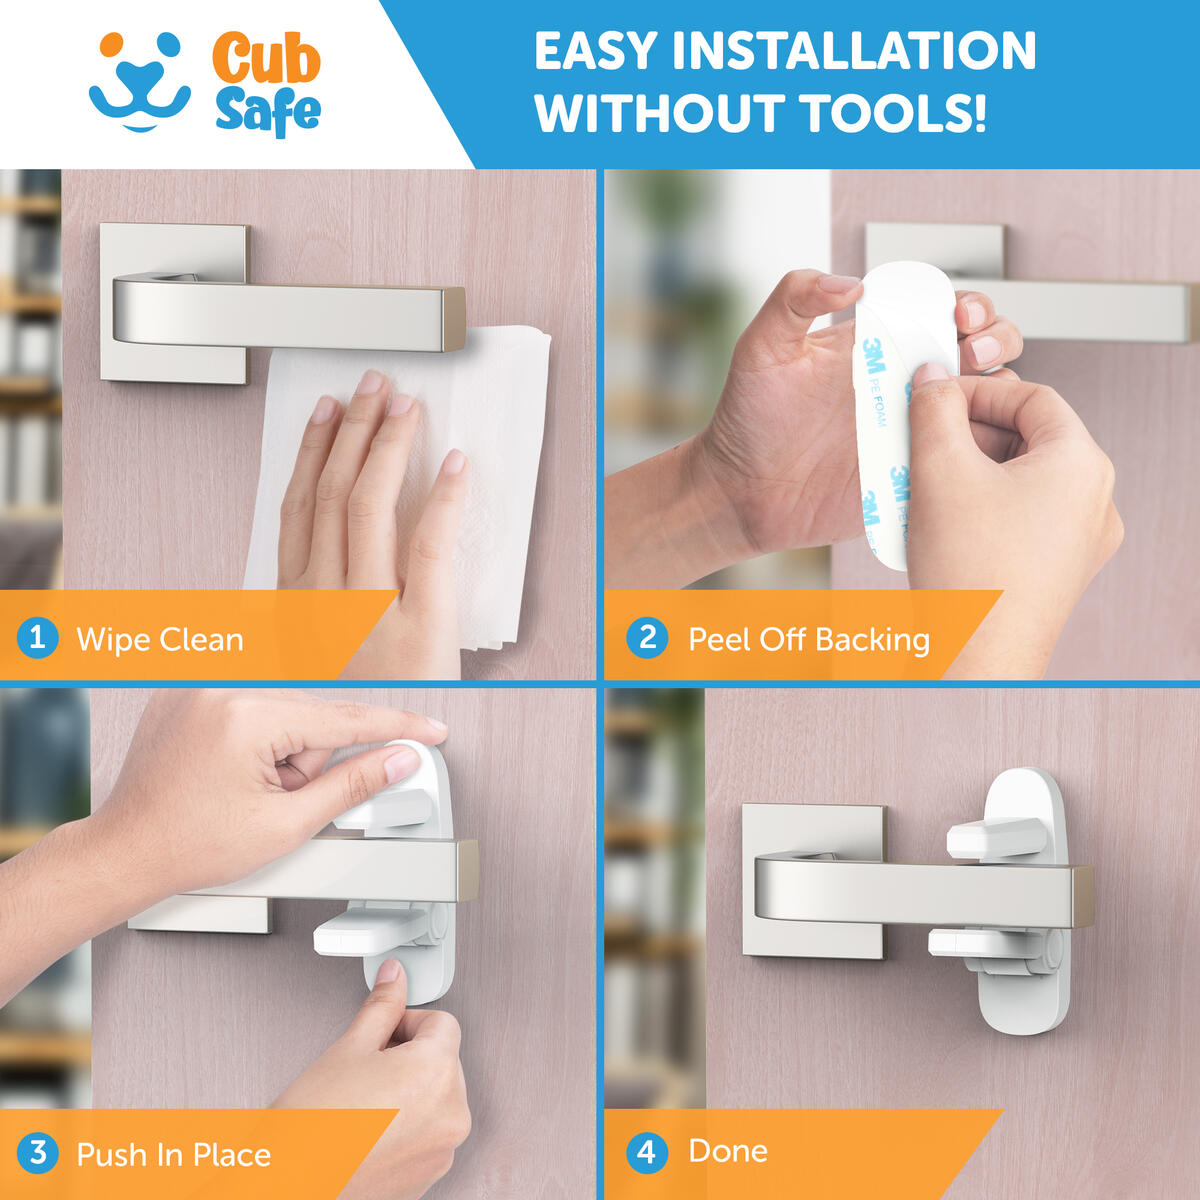 Improved Childproof Door Lever Lock (4 Pcs) and Multipurpose Safety Straps (4 Pcs) with Adjustable Strap and 3M Adhesive.